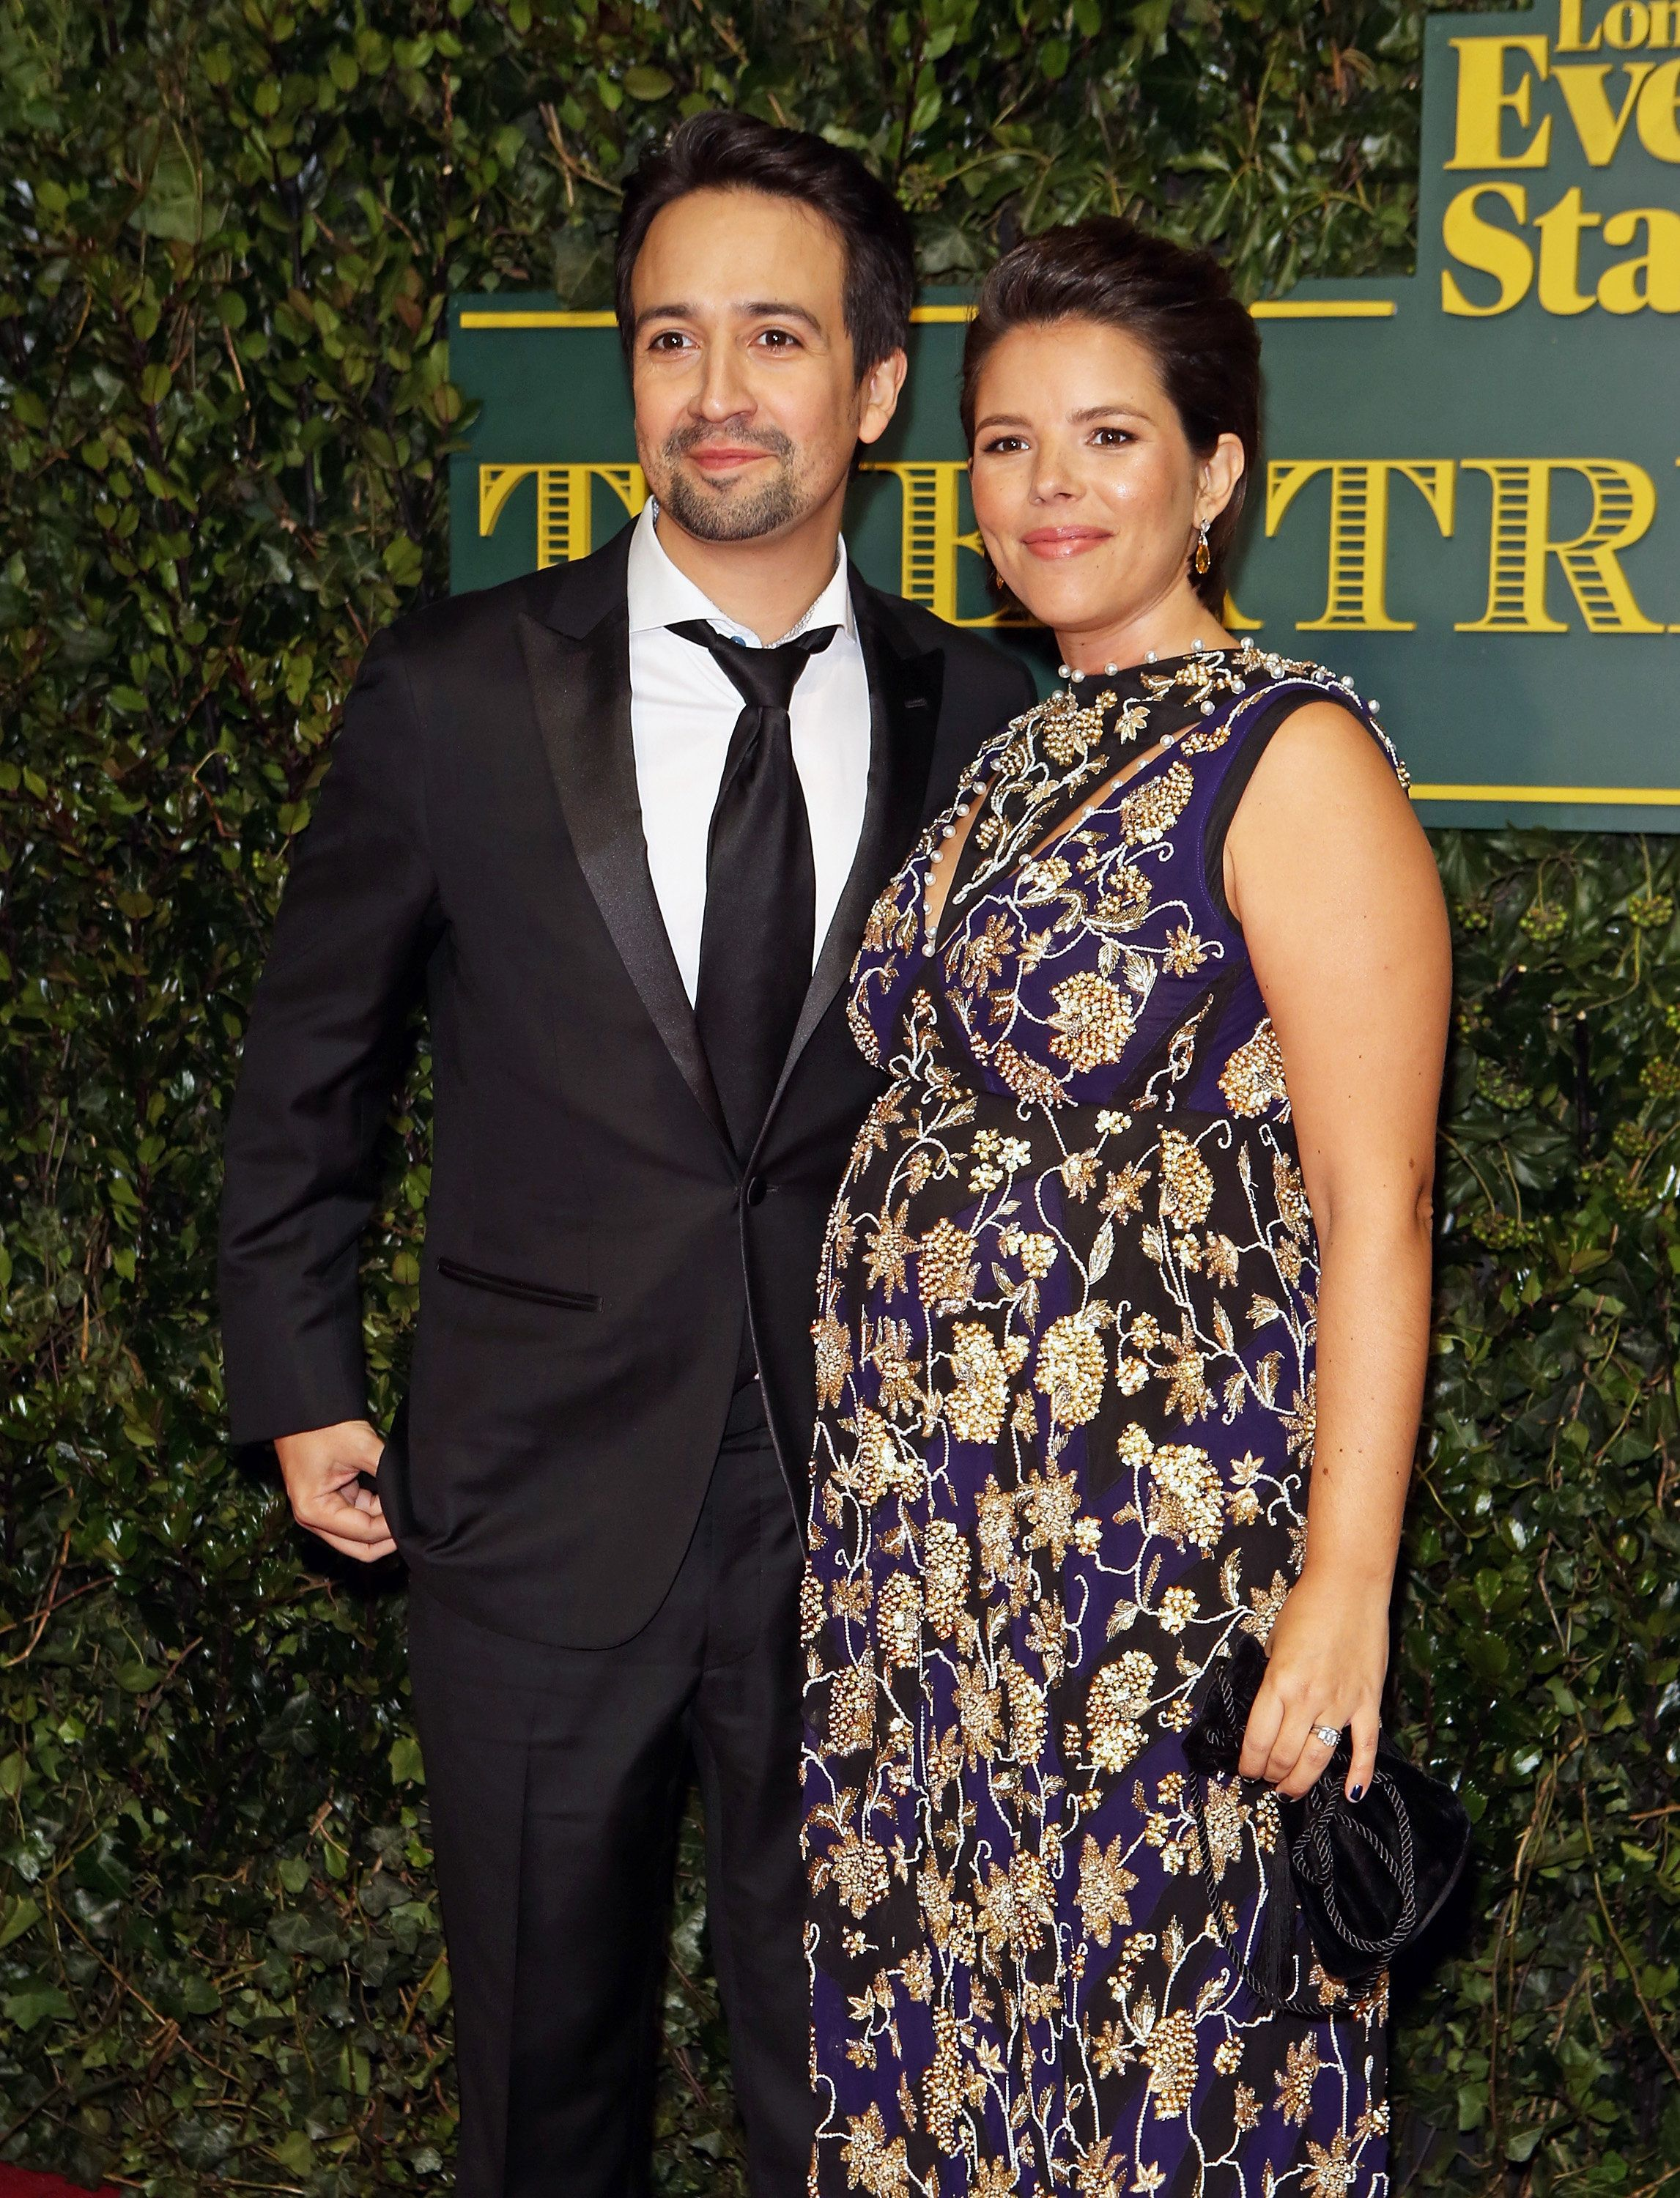 LONDON, ENGLAND - DECEMBER 03:  Lin-Manuel Miranda and Vanessa Nadal attend the London Evening Standard Theatre Awards at Theatre Royal on December 3, 2017 in London, England.  (Photo by David M. Benett/Dave Benett/Getty Images)